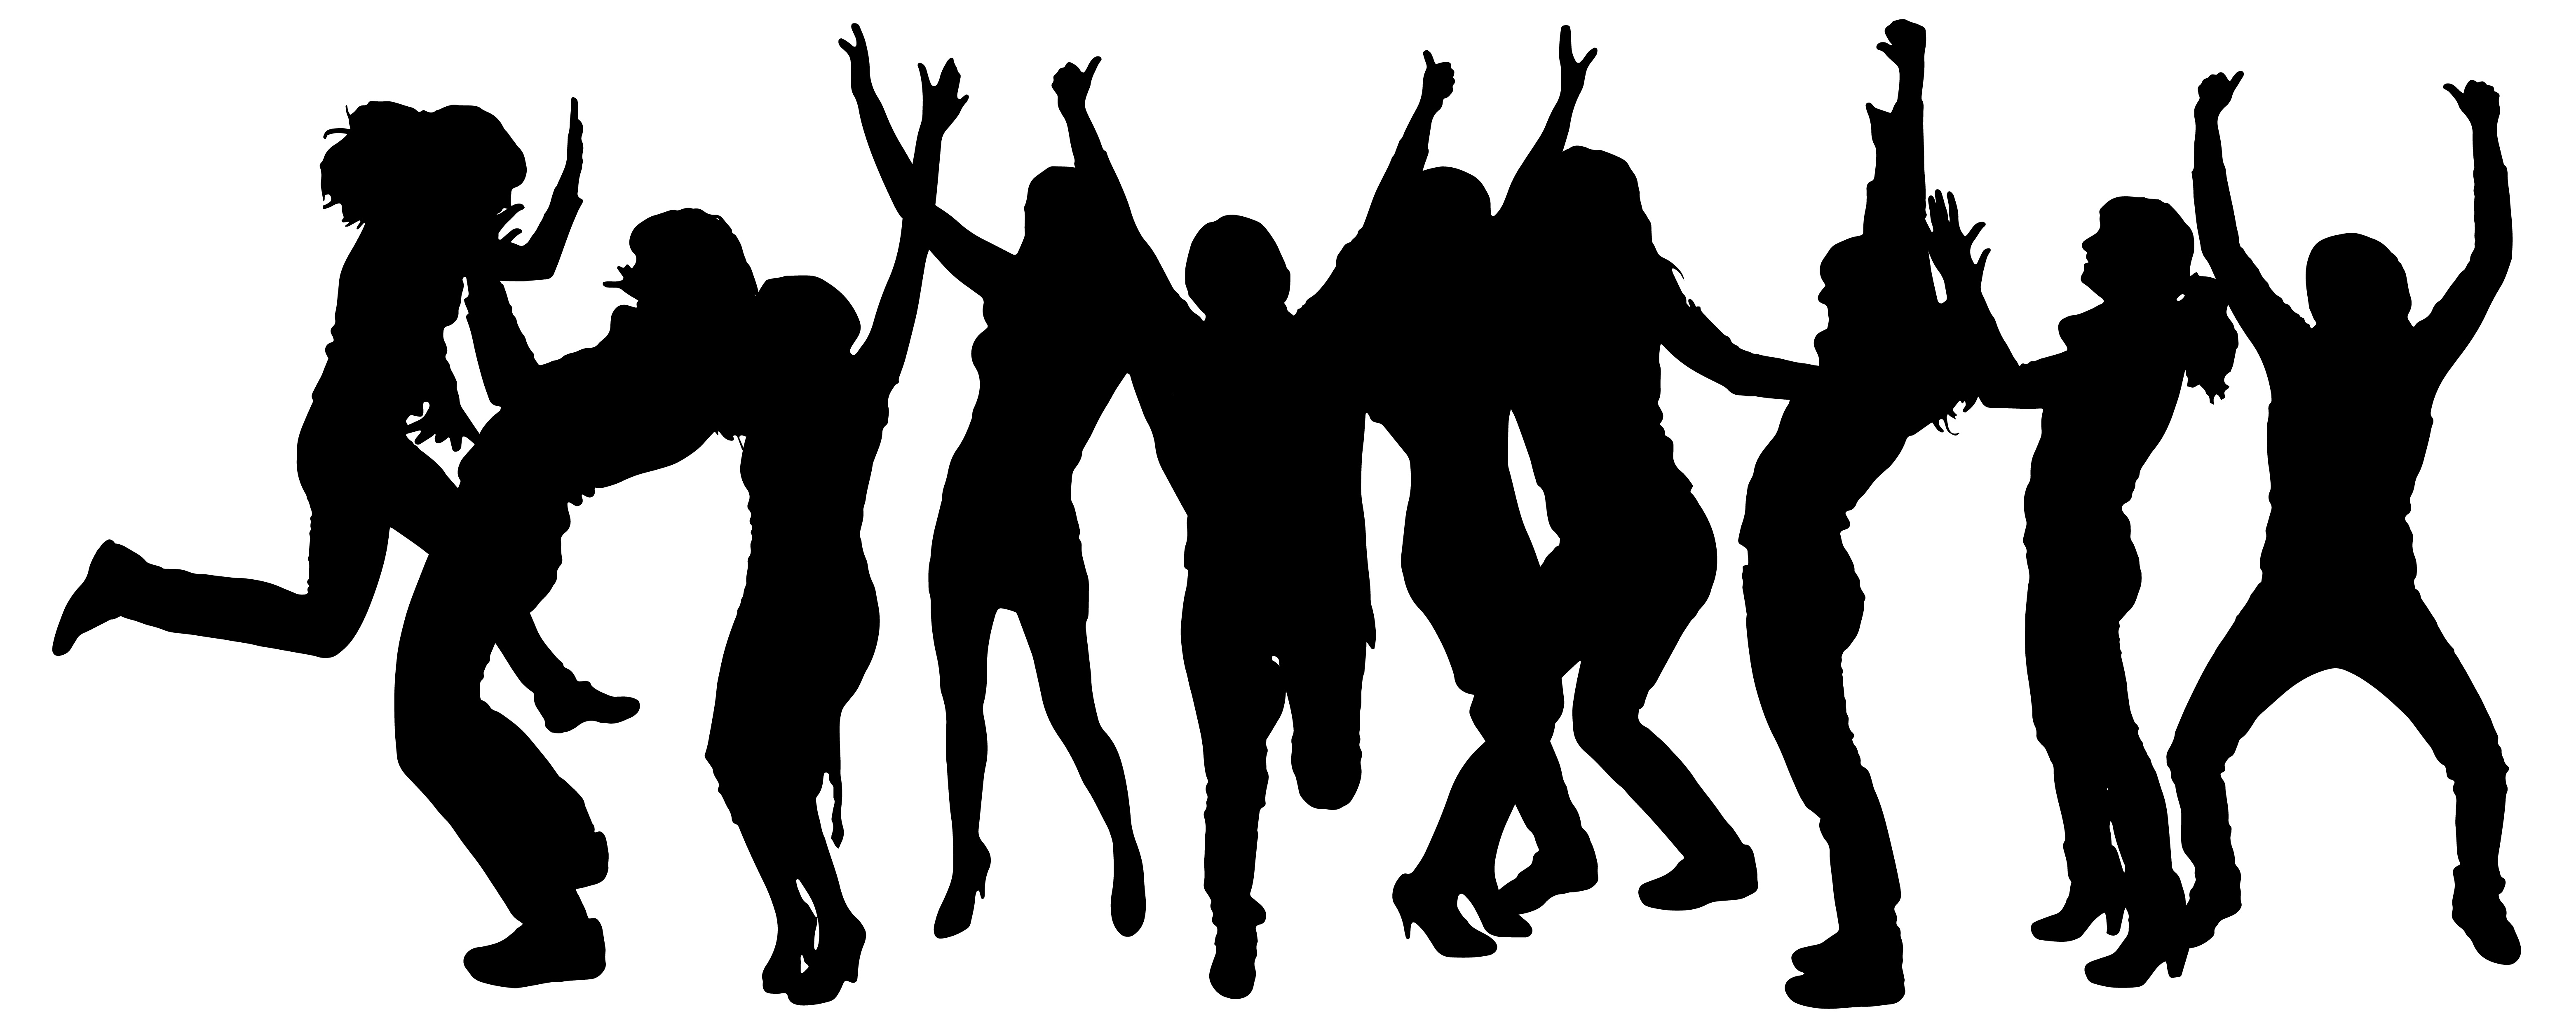 team silhouette at getdrawings com free for personal use Dance Clip Art Dance Team Logos